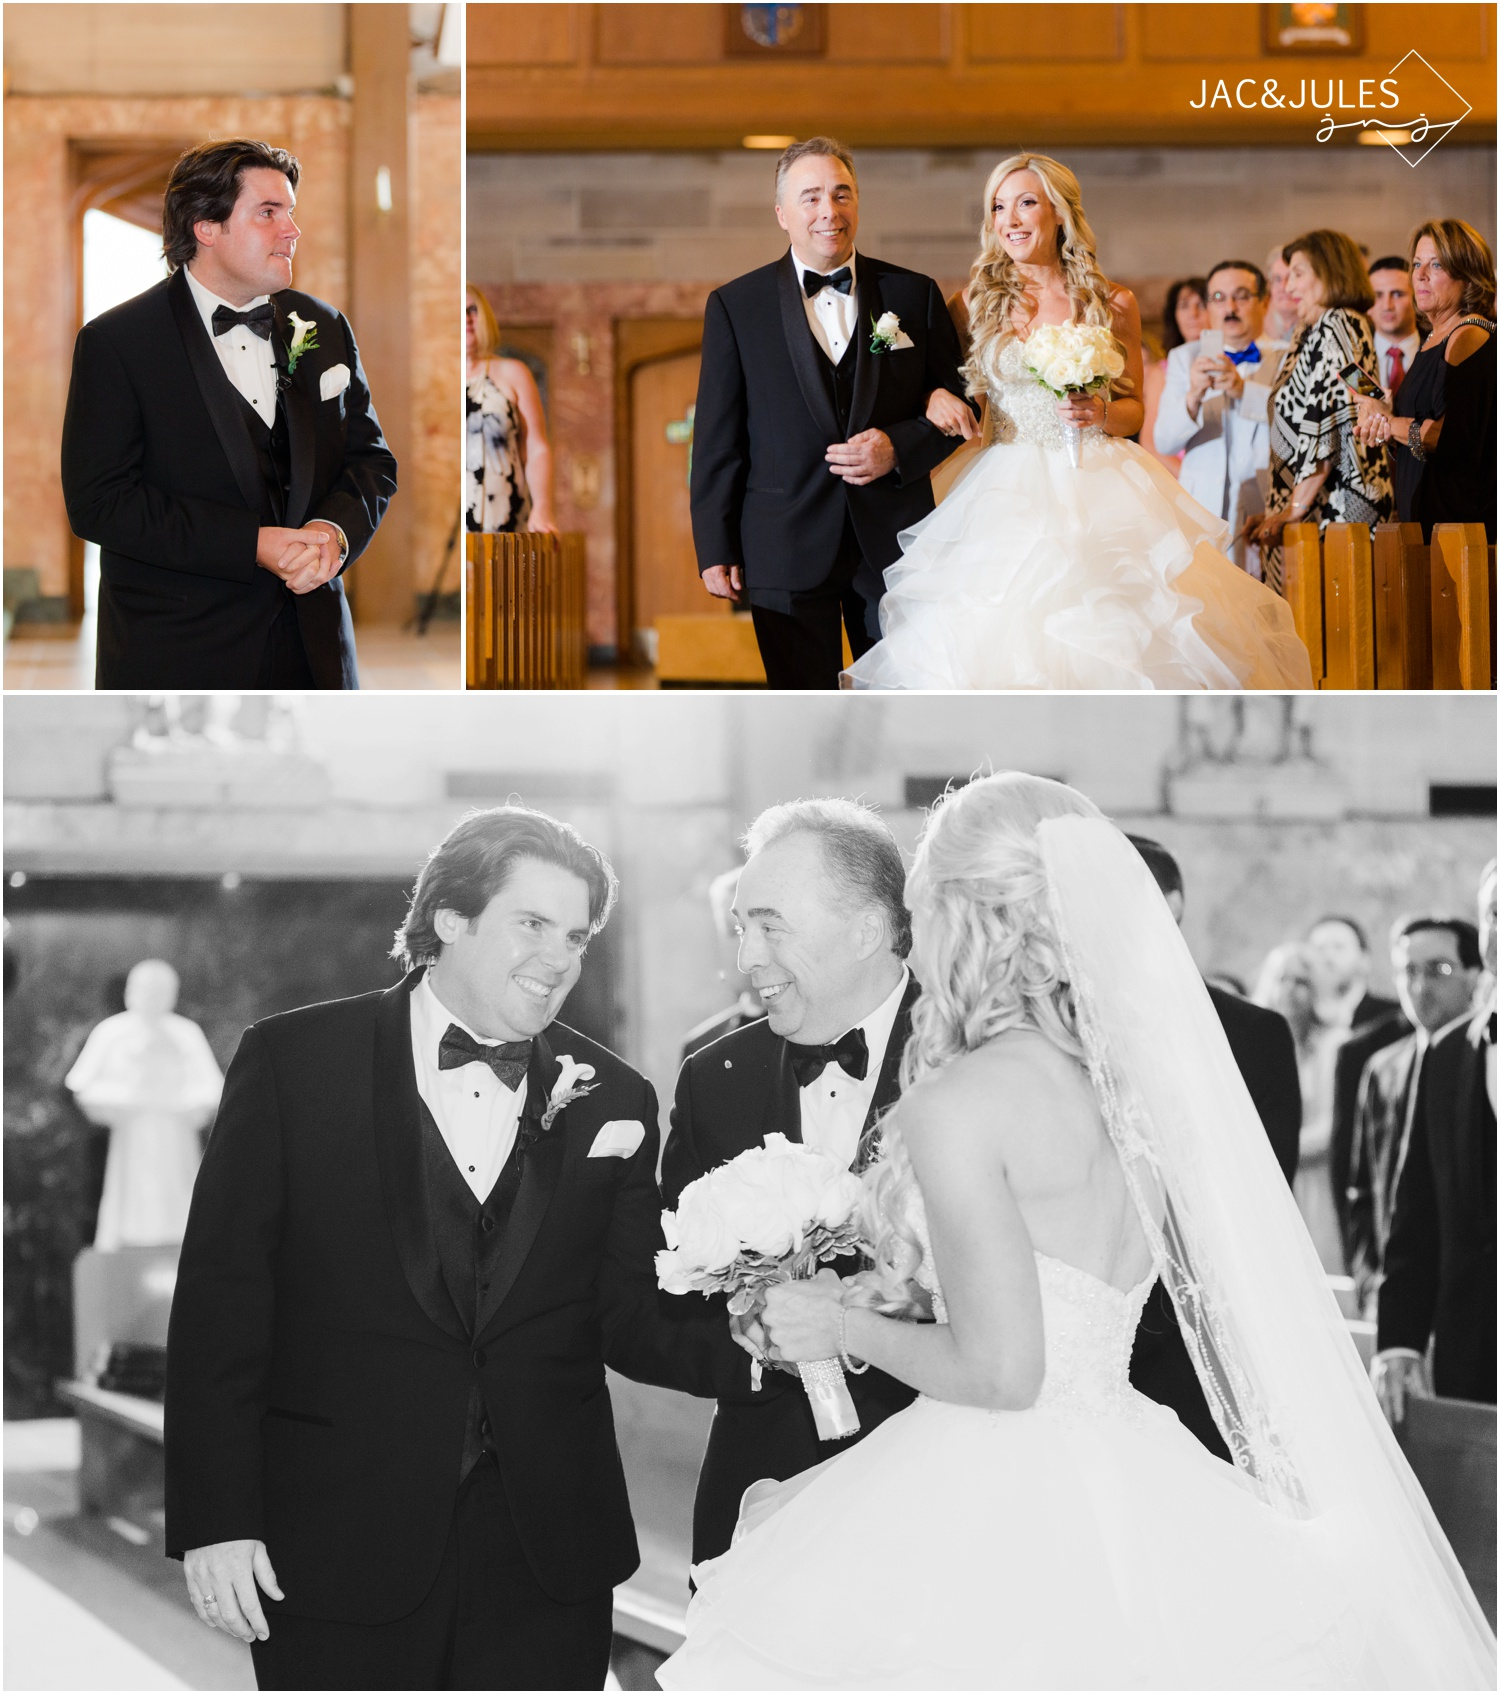 Emotional groom at wedding ceremony at St. Francis in Metuchen, NJ.